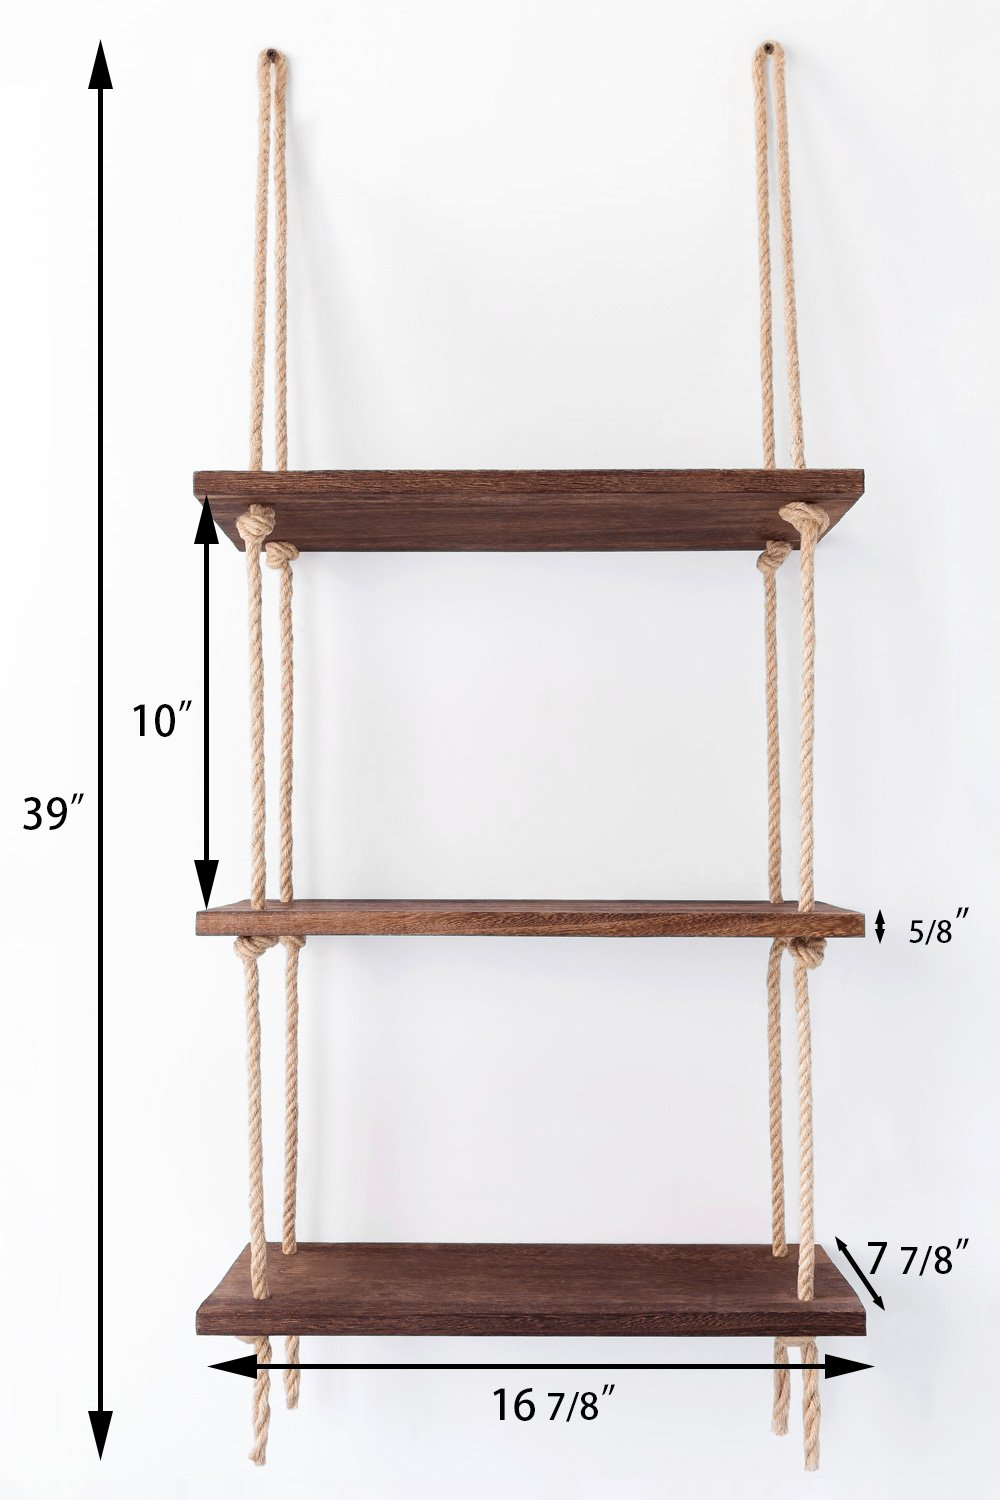 Mkono Wood Hanging Shelf Wall Swing Storage Shelves Jute Rope Organizer Rack, 3 Tier - This wood hanging shelf is the perfect storage and decorate shelf for many rooms in the home. Living room for organize your books, lovely plants or candle, kitchen for storage spices or coffee cups, bathroom to hold towel, makeup or nail polish, bedrooms for display photo frames and mementos. Material: Paulownia wood, jute rope, strong and durable. The props in the picture are not included. Can be installed in window or wall space and incorporated easily into any space, like hang it in store to organize special item. Or will be fun in a garden or porch setting to hold your plants! - wall-shelves, living-room-furniture, living-room - 61LMMl7d3tL -